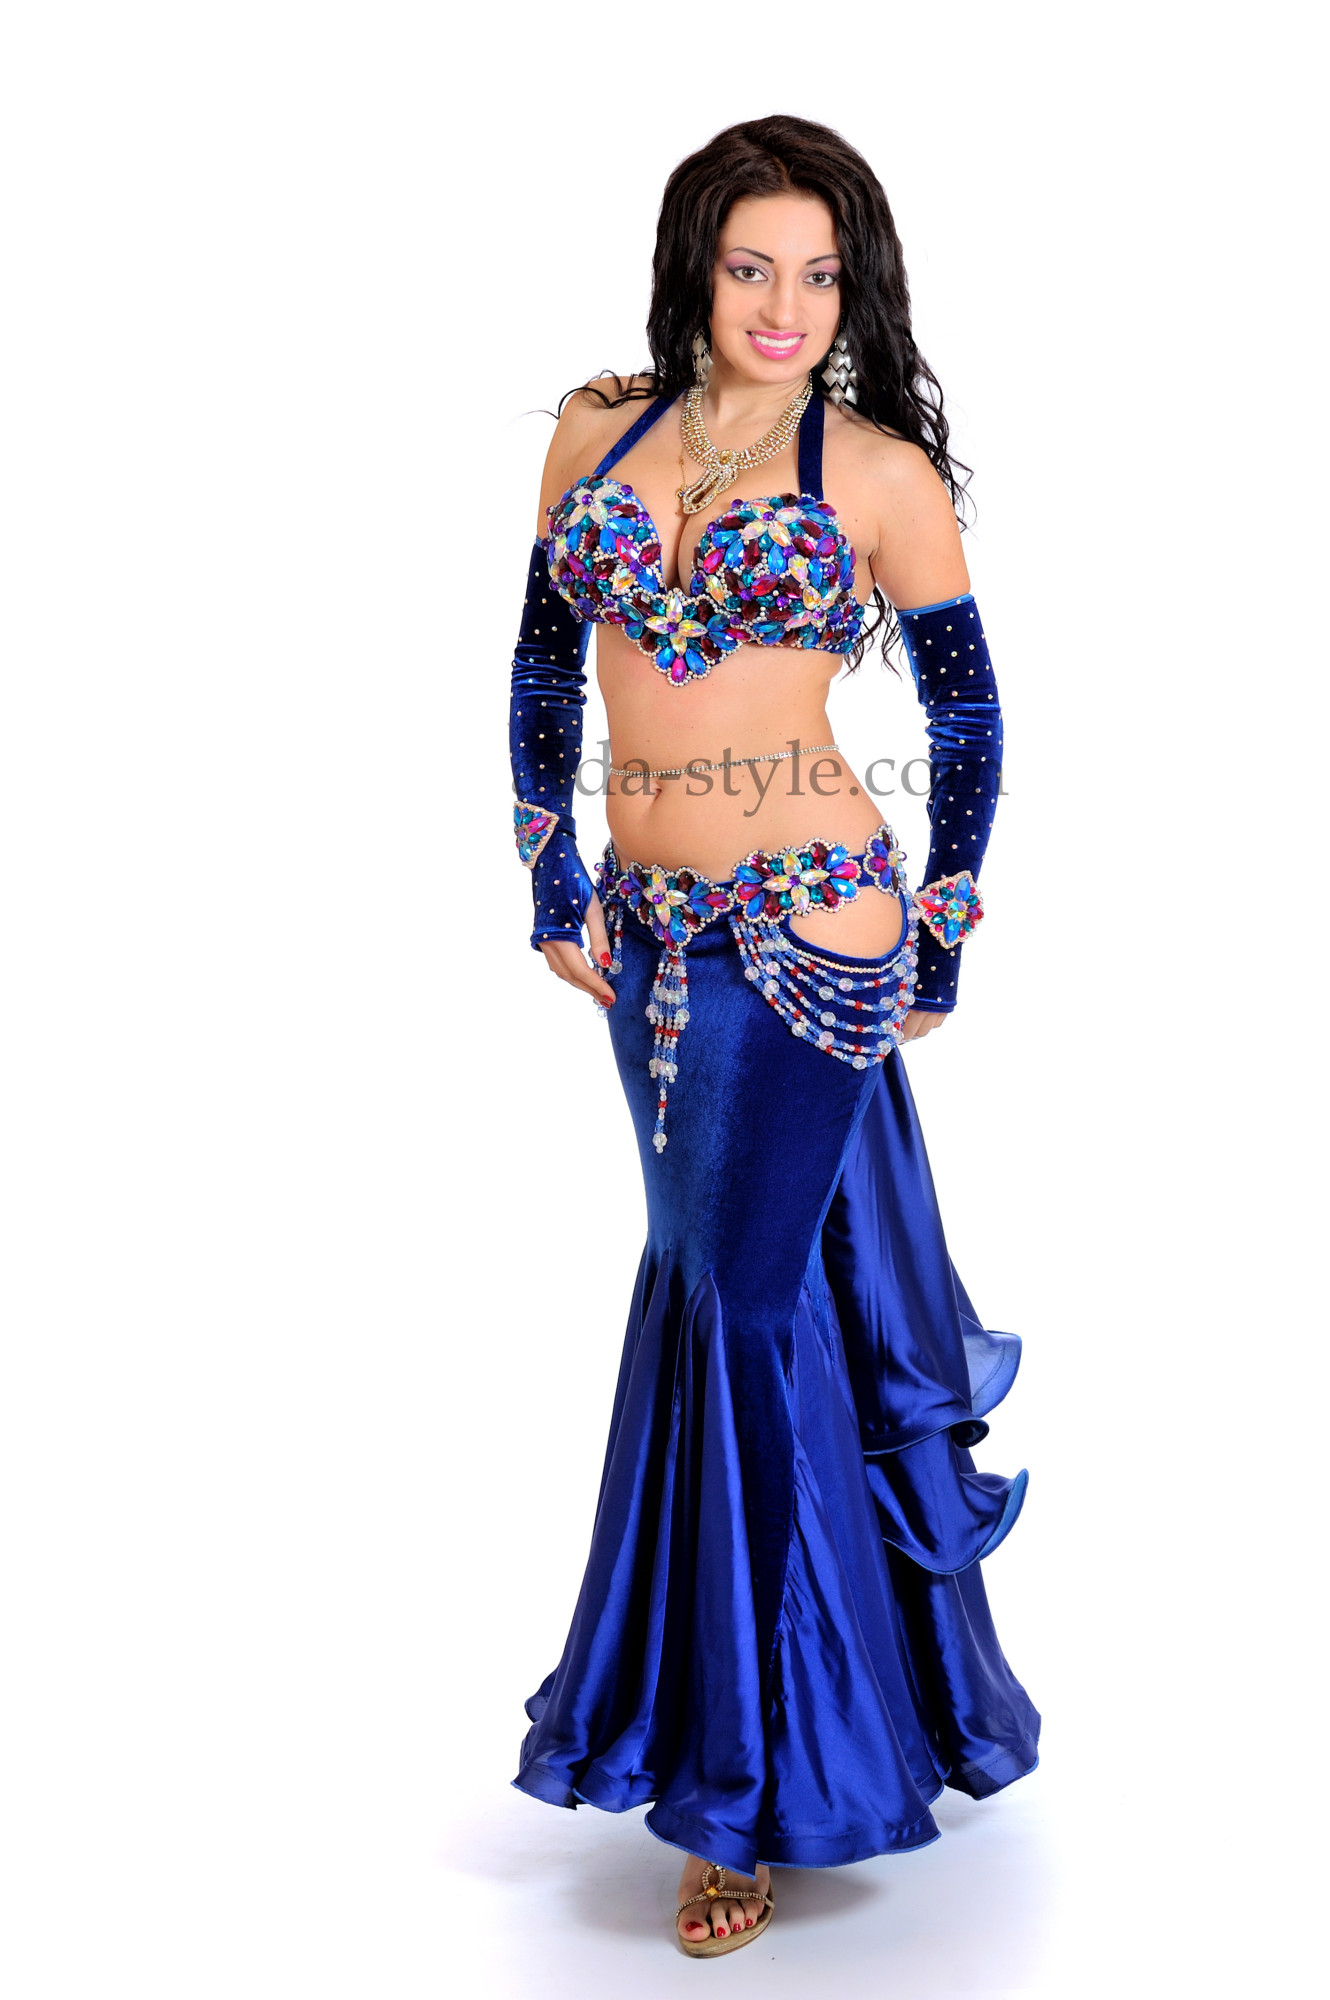 Beautiful classic style professional belly dance costume decorated with stones and fibres of stones